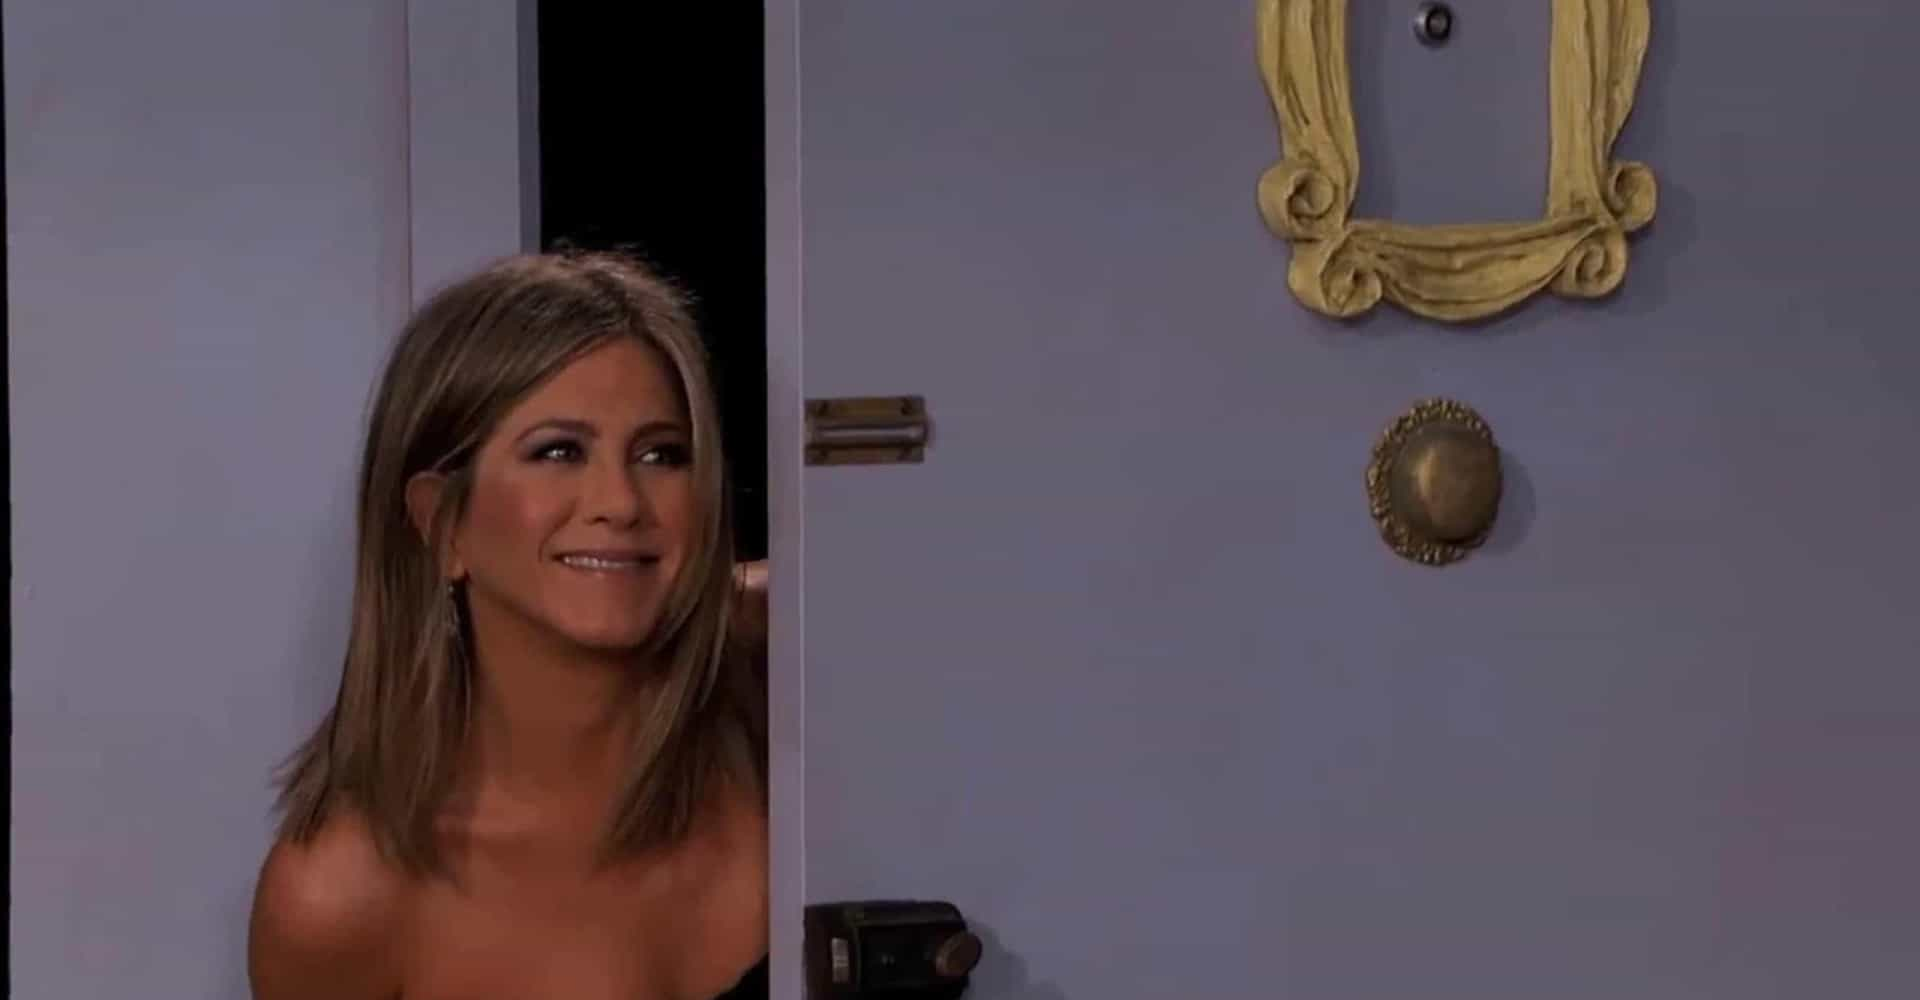 Jennifer Aniston's most hilarious quotes from 'Friends'